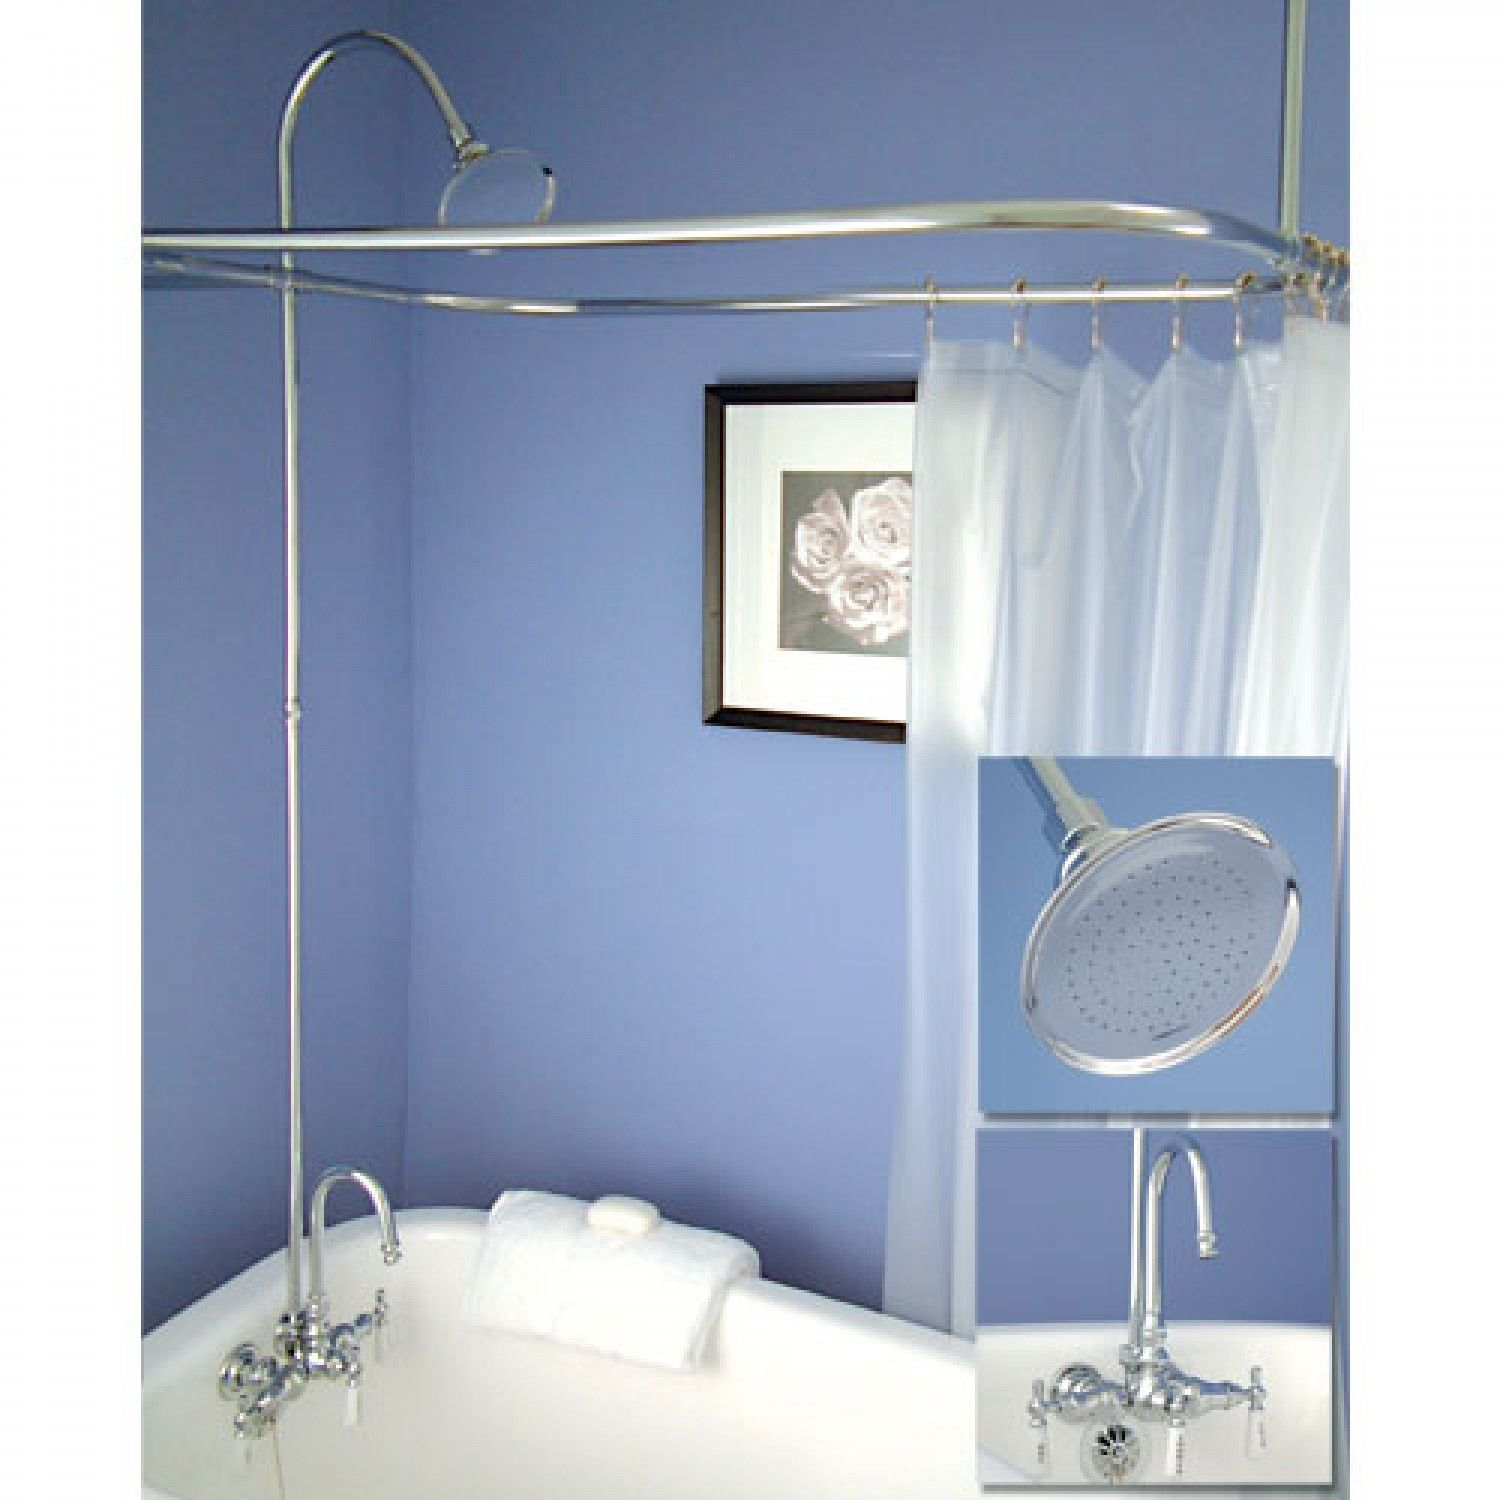 Bathrooms With Clawfoot Tubs Photo Only Home Bathroom Shower